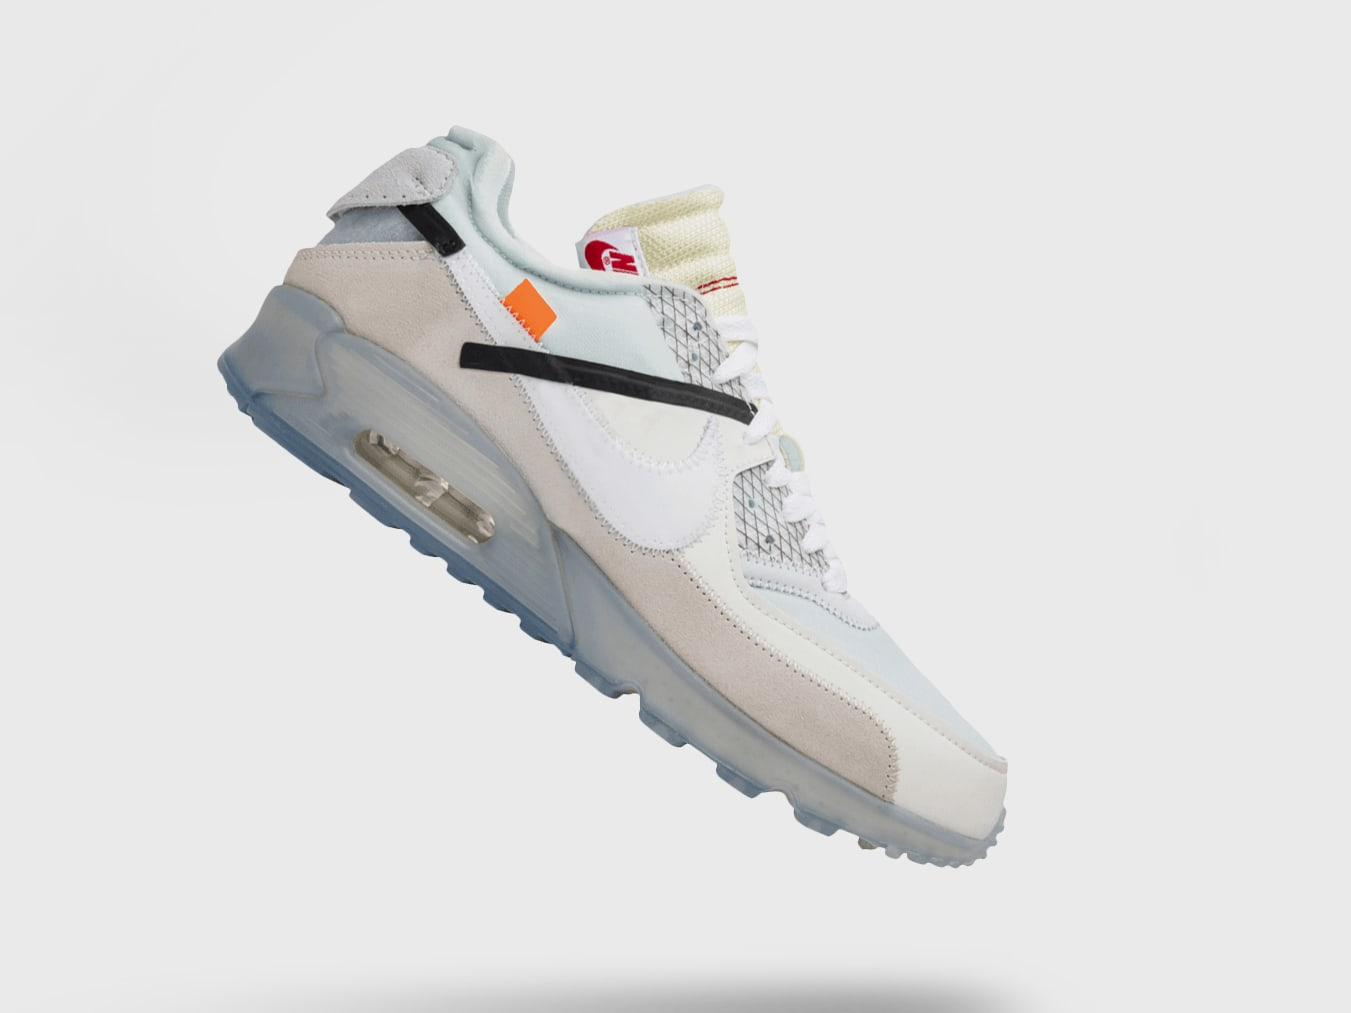 off-white x nike air max 90 'the ten'